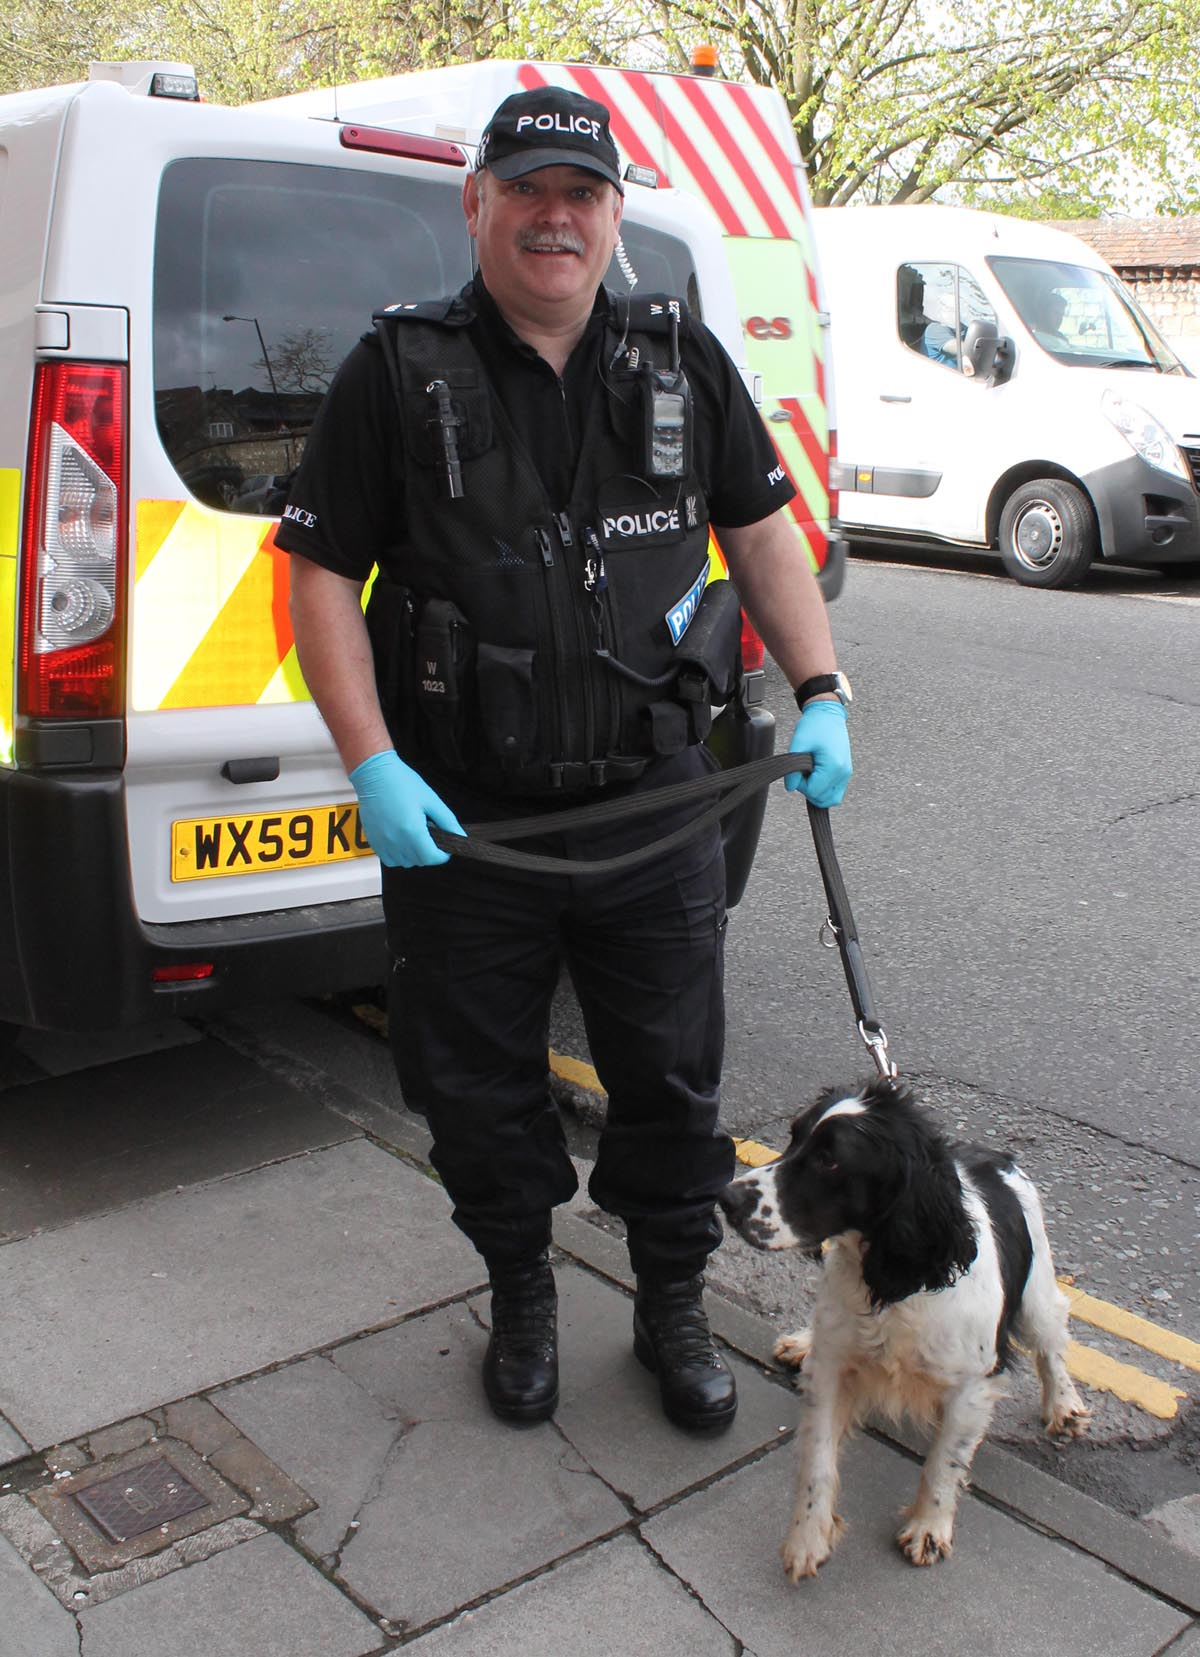 Officers from across Wiltshire took part alongside specialist drugs dogs today